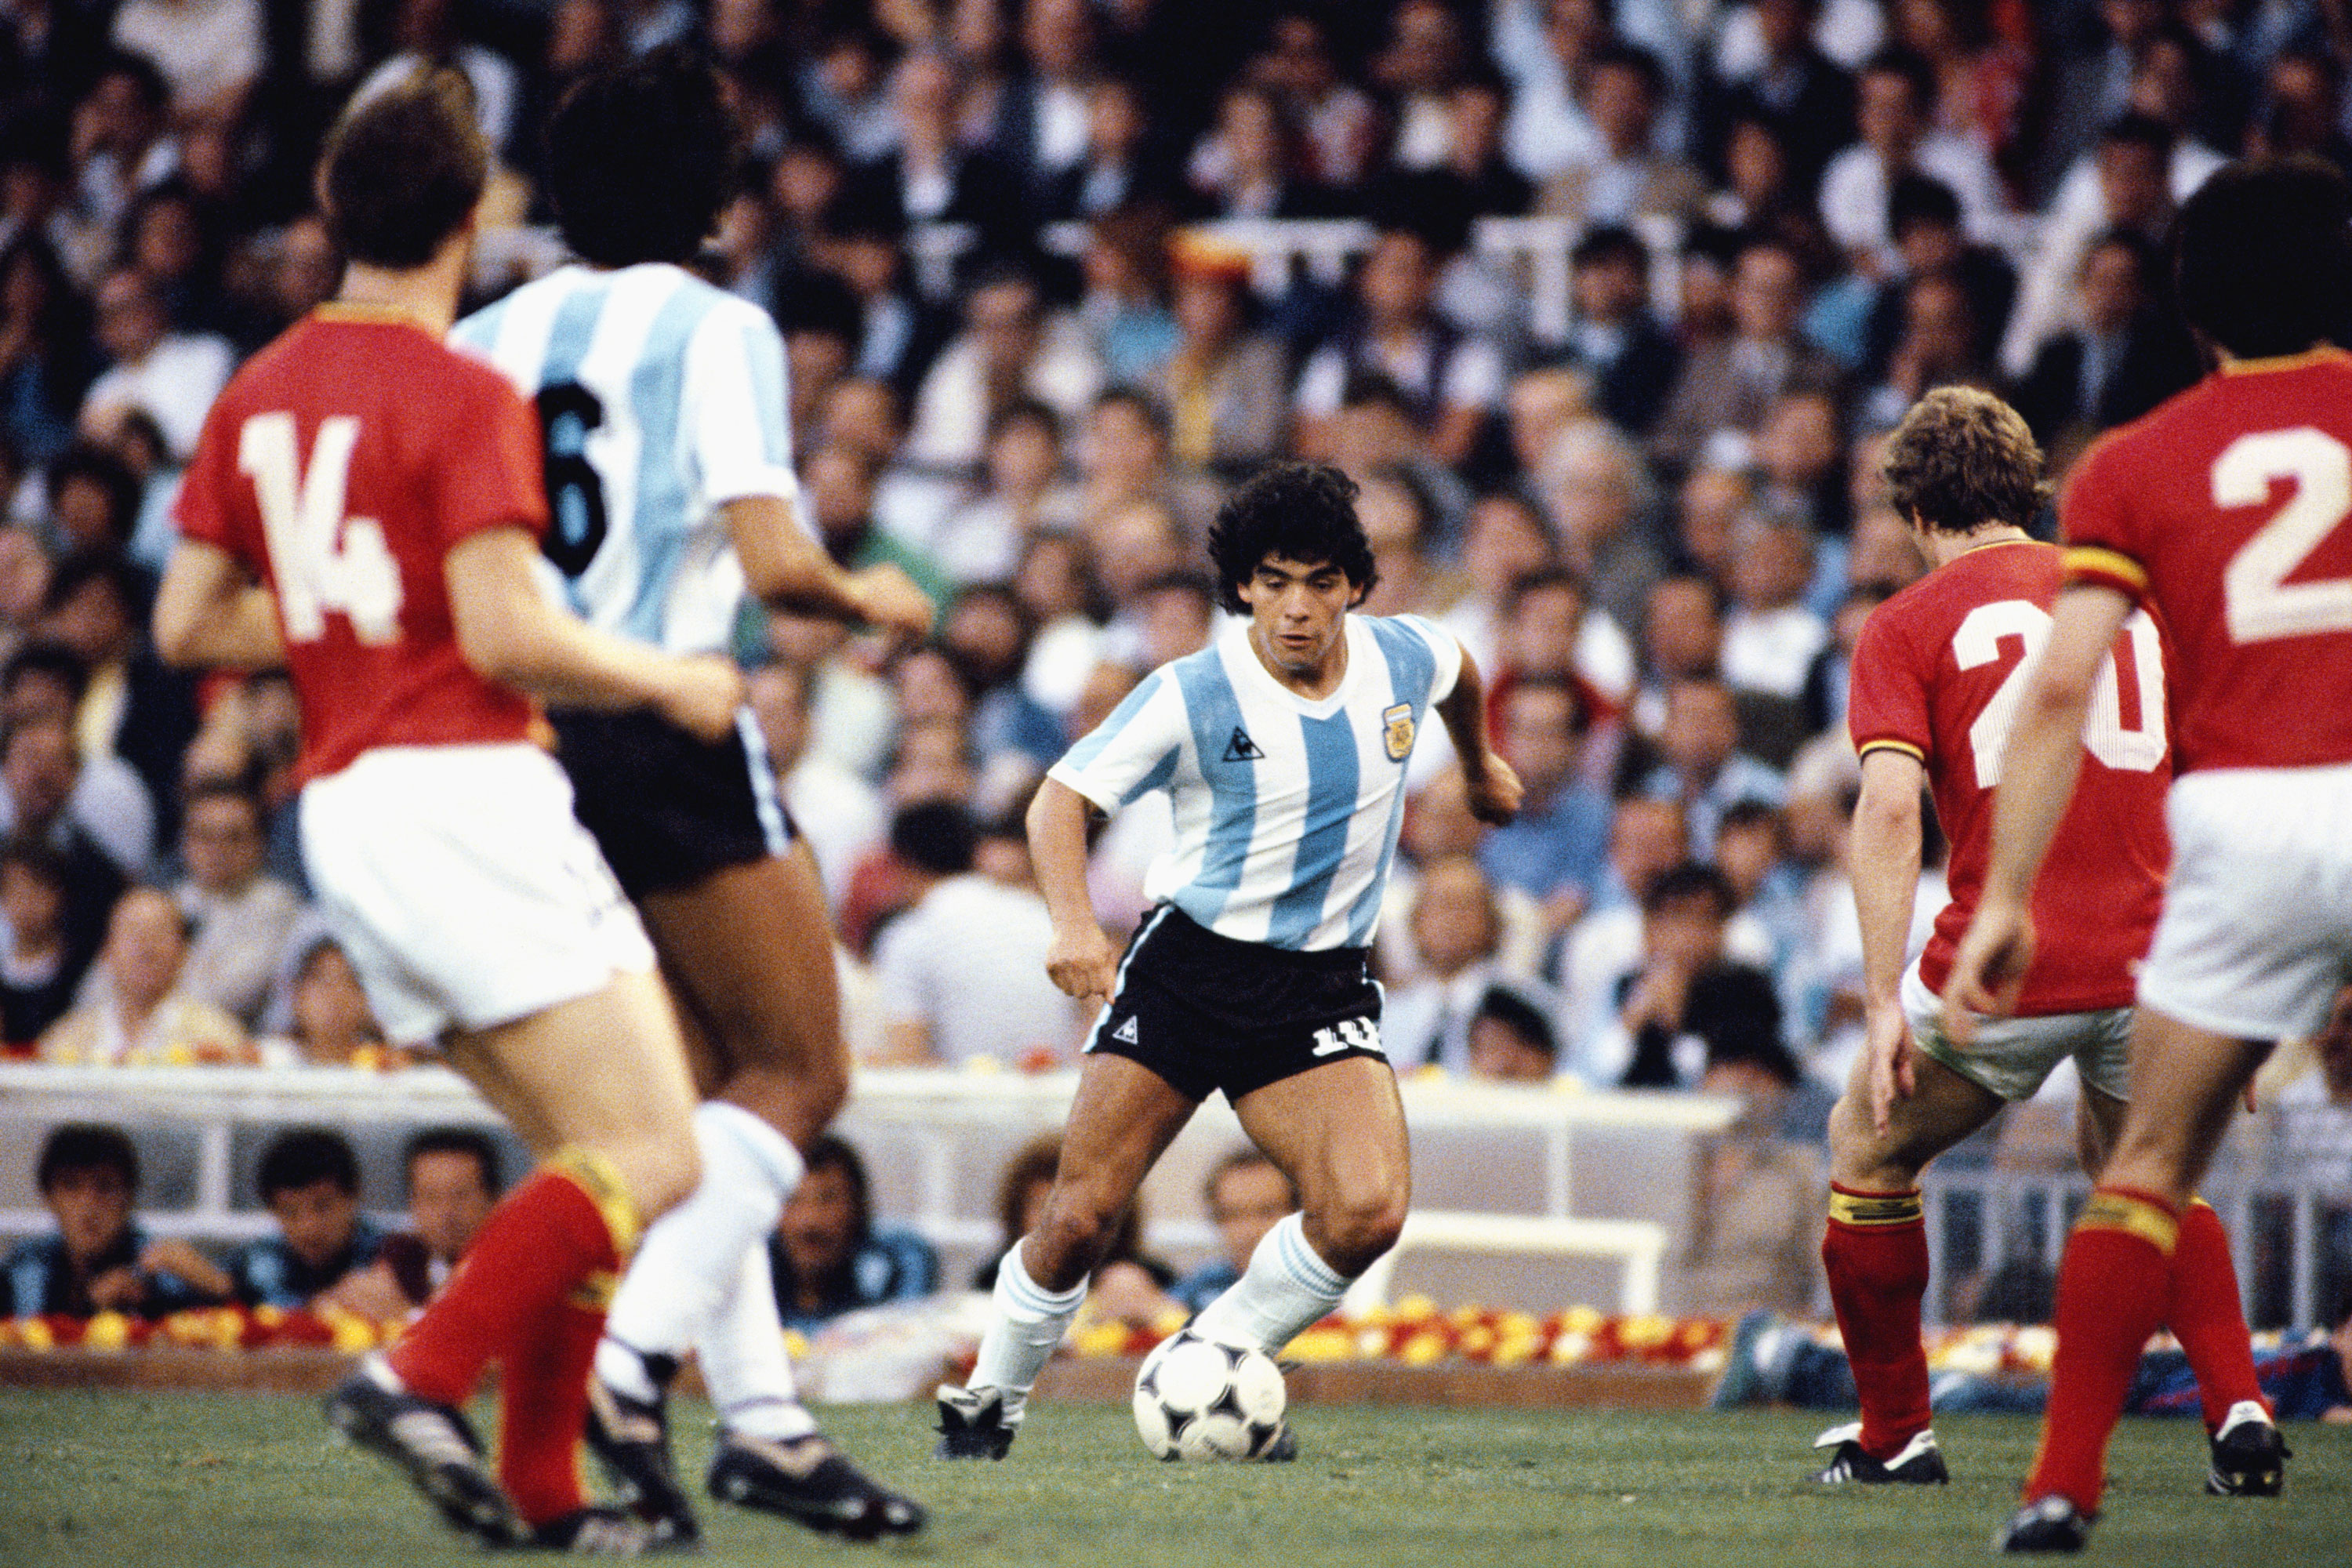 Diego Armando Maradona: The tormented genius who became one of football's greatest players